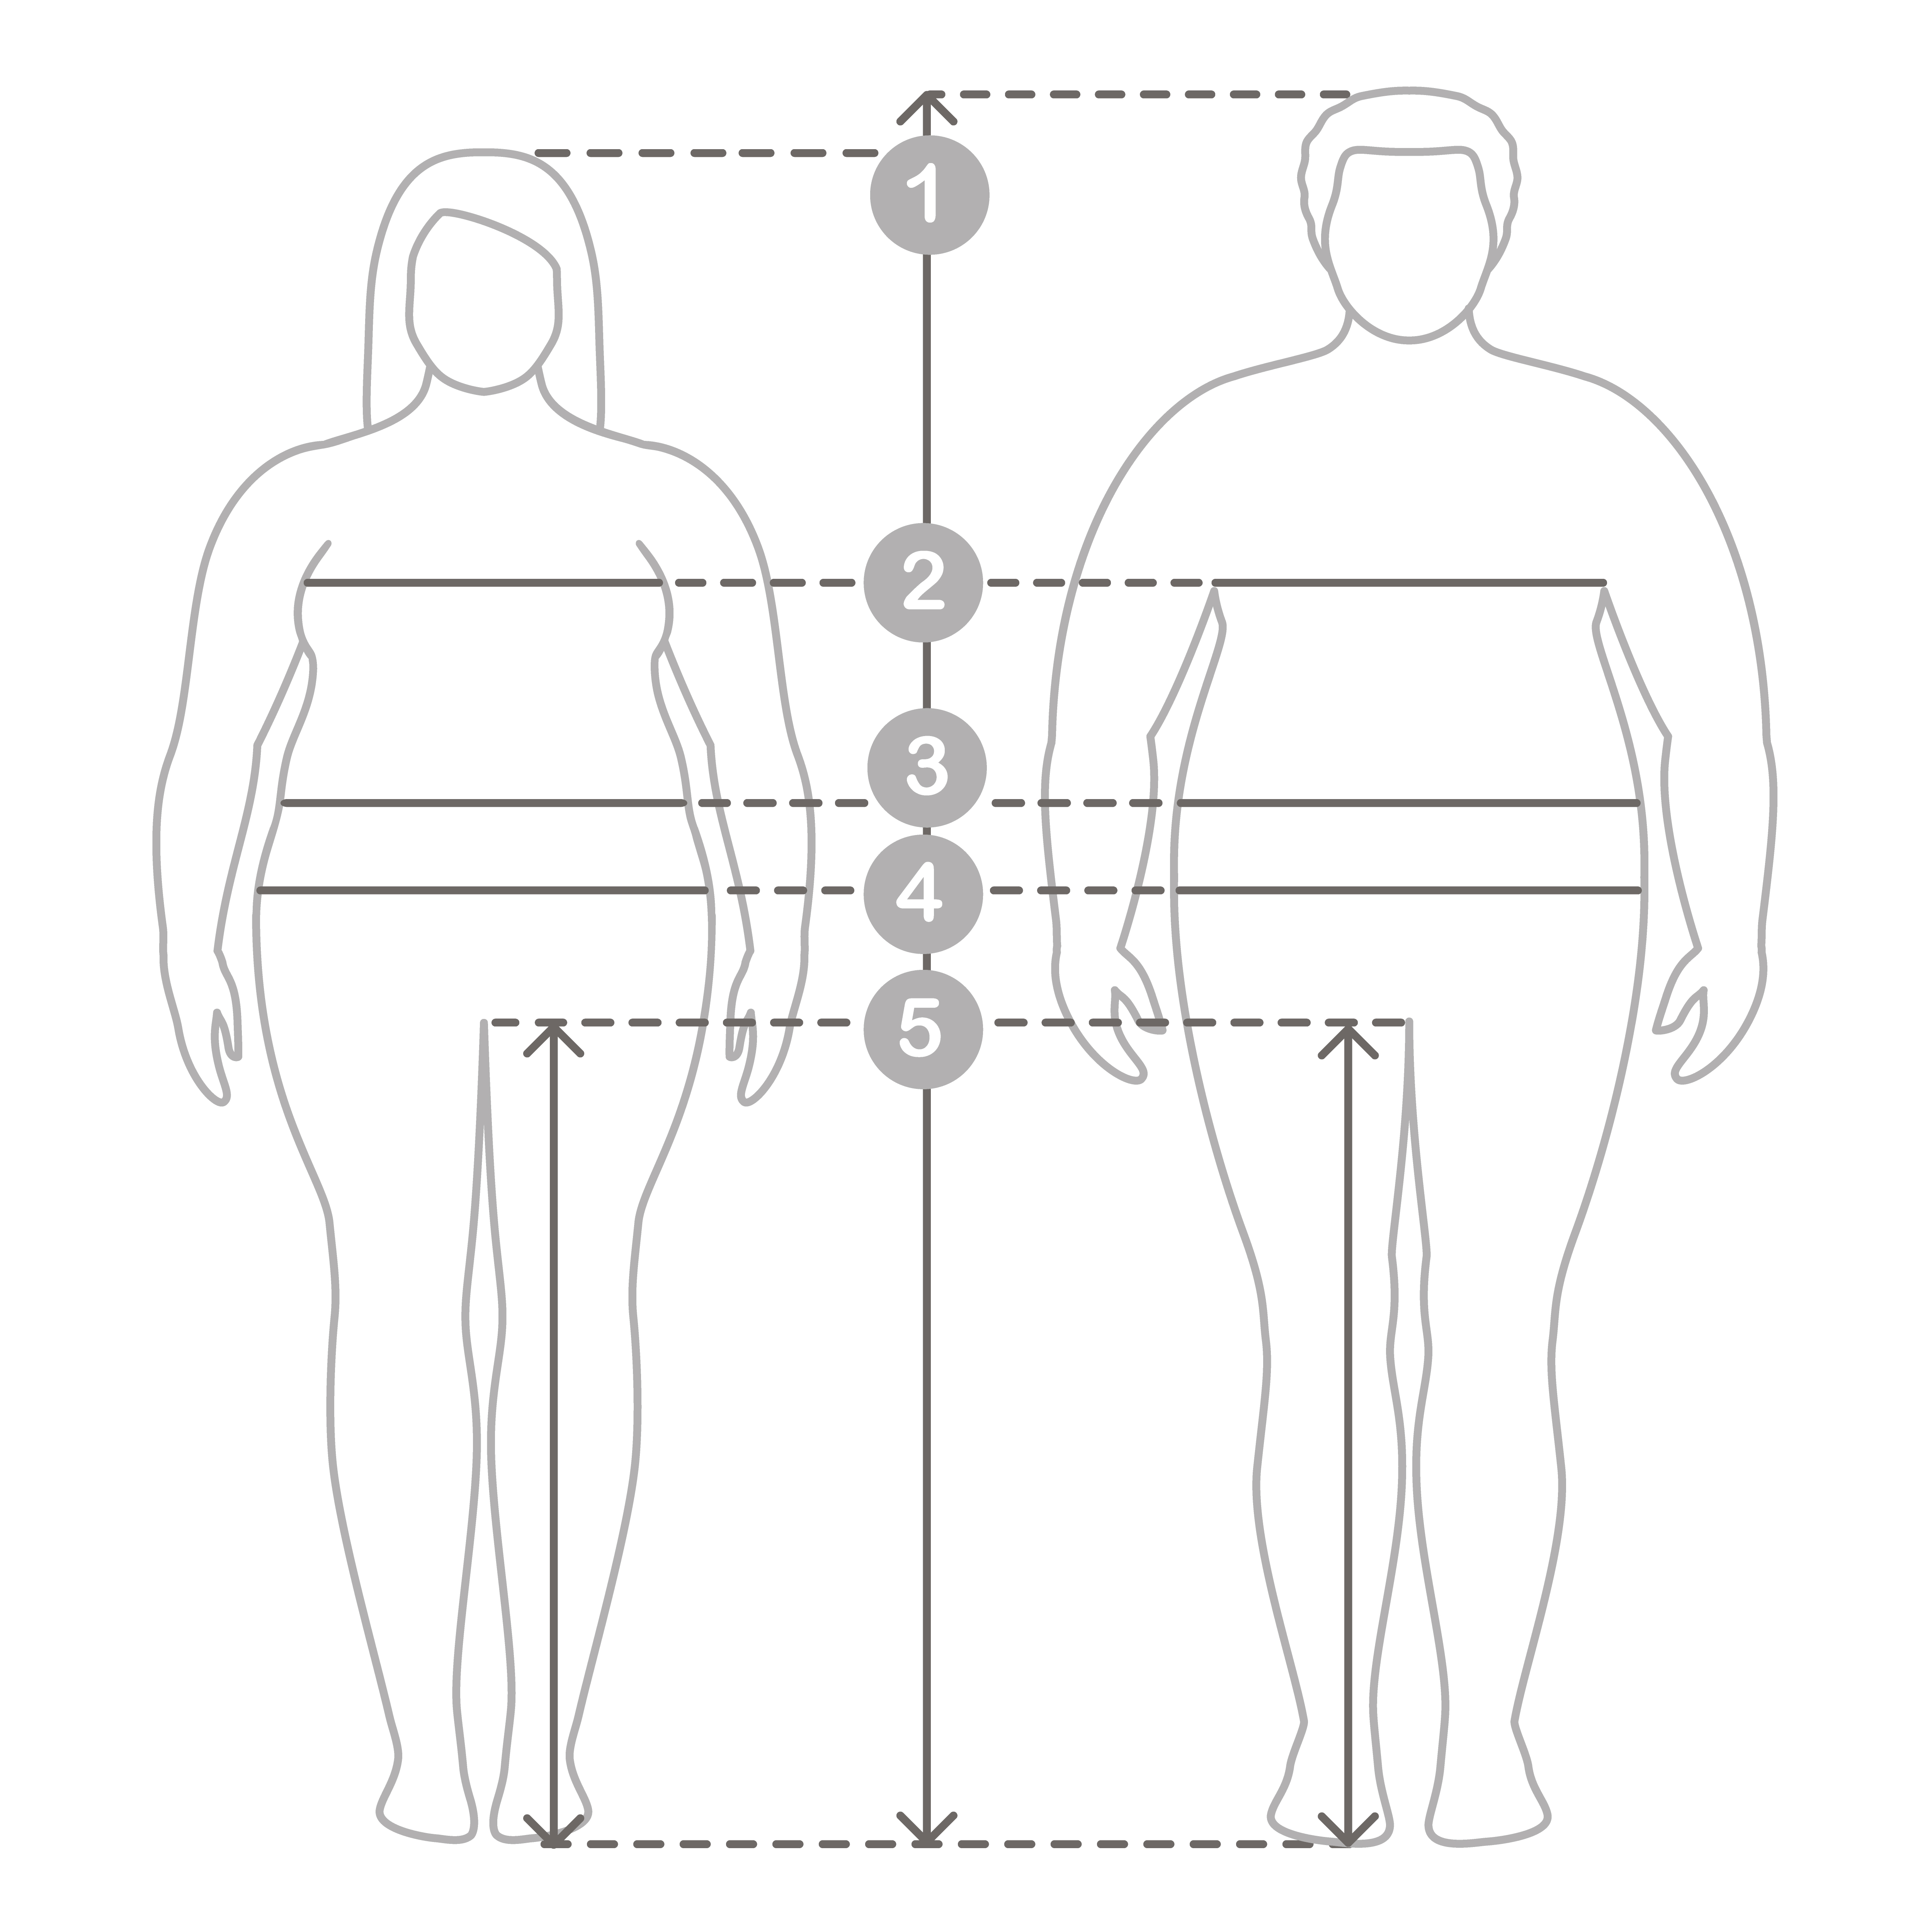 contours of overweight man and women in full length with measurement lines of body parameters